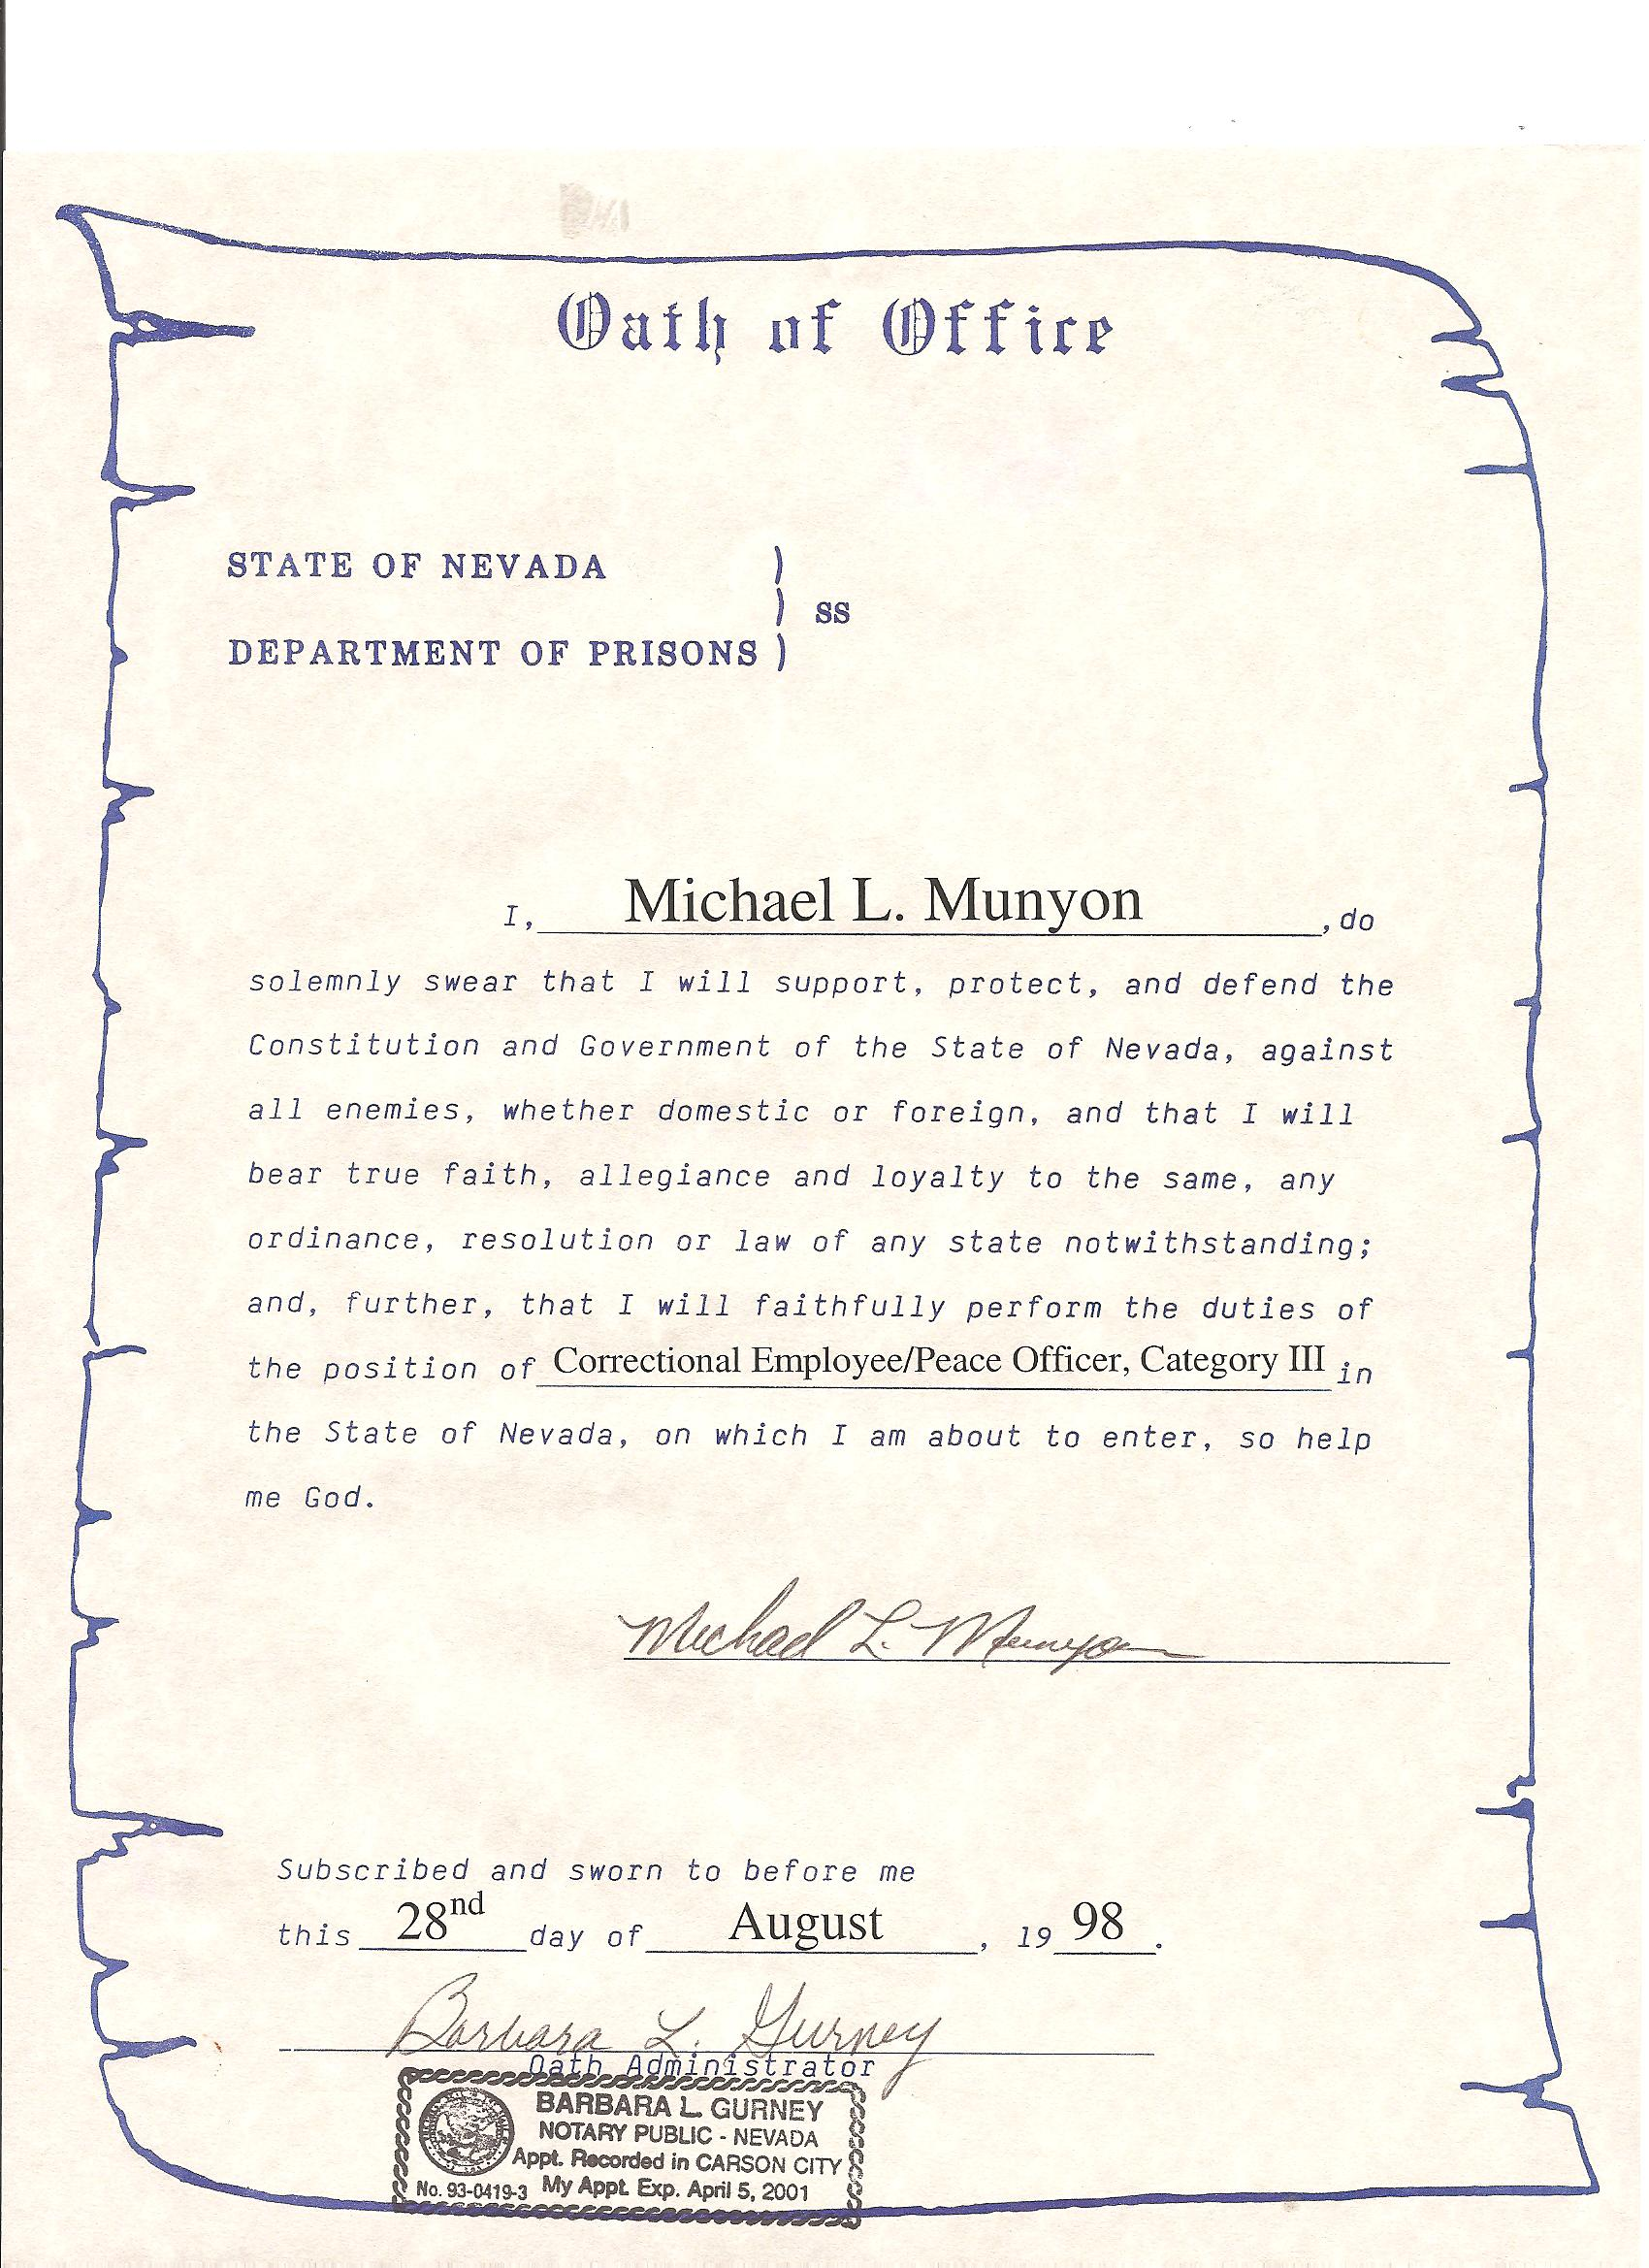 Credentials munyons korean martial arts academy oath of office peace and correctional officer certificate xflitez Images